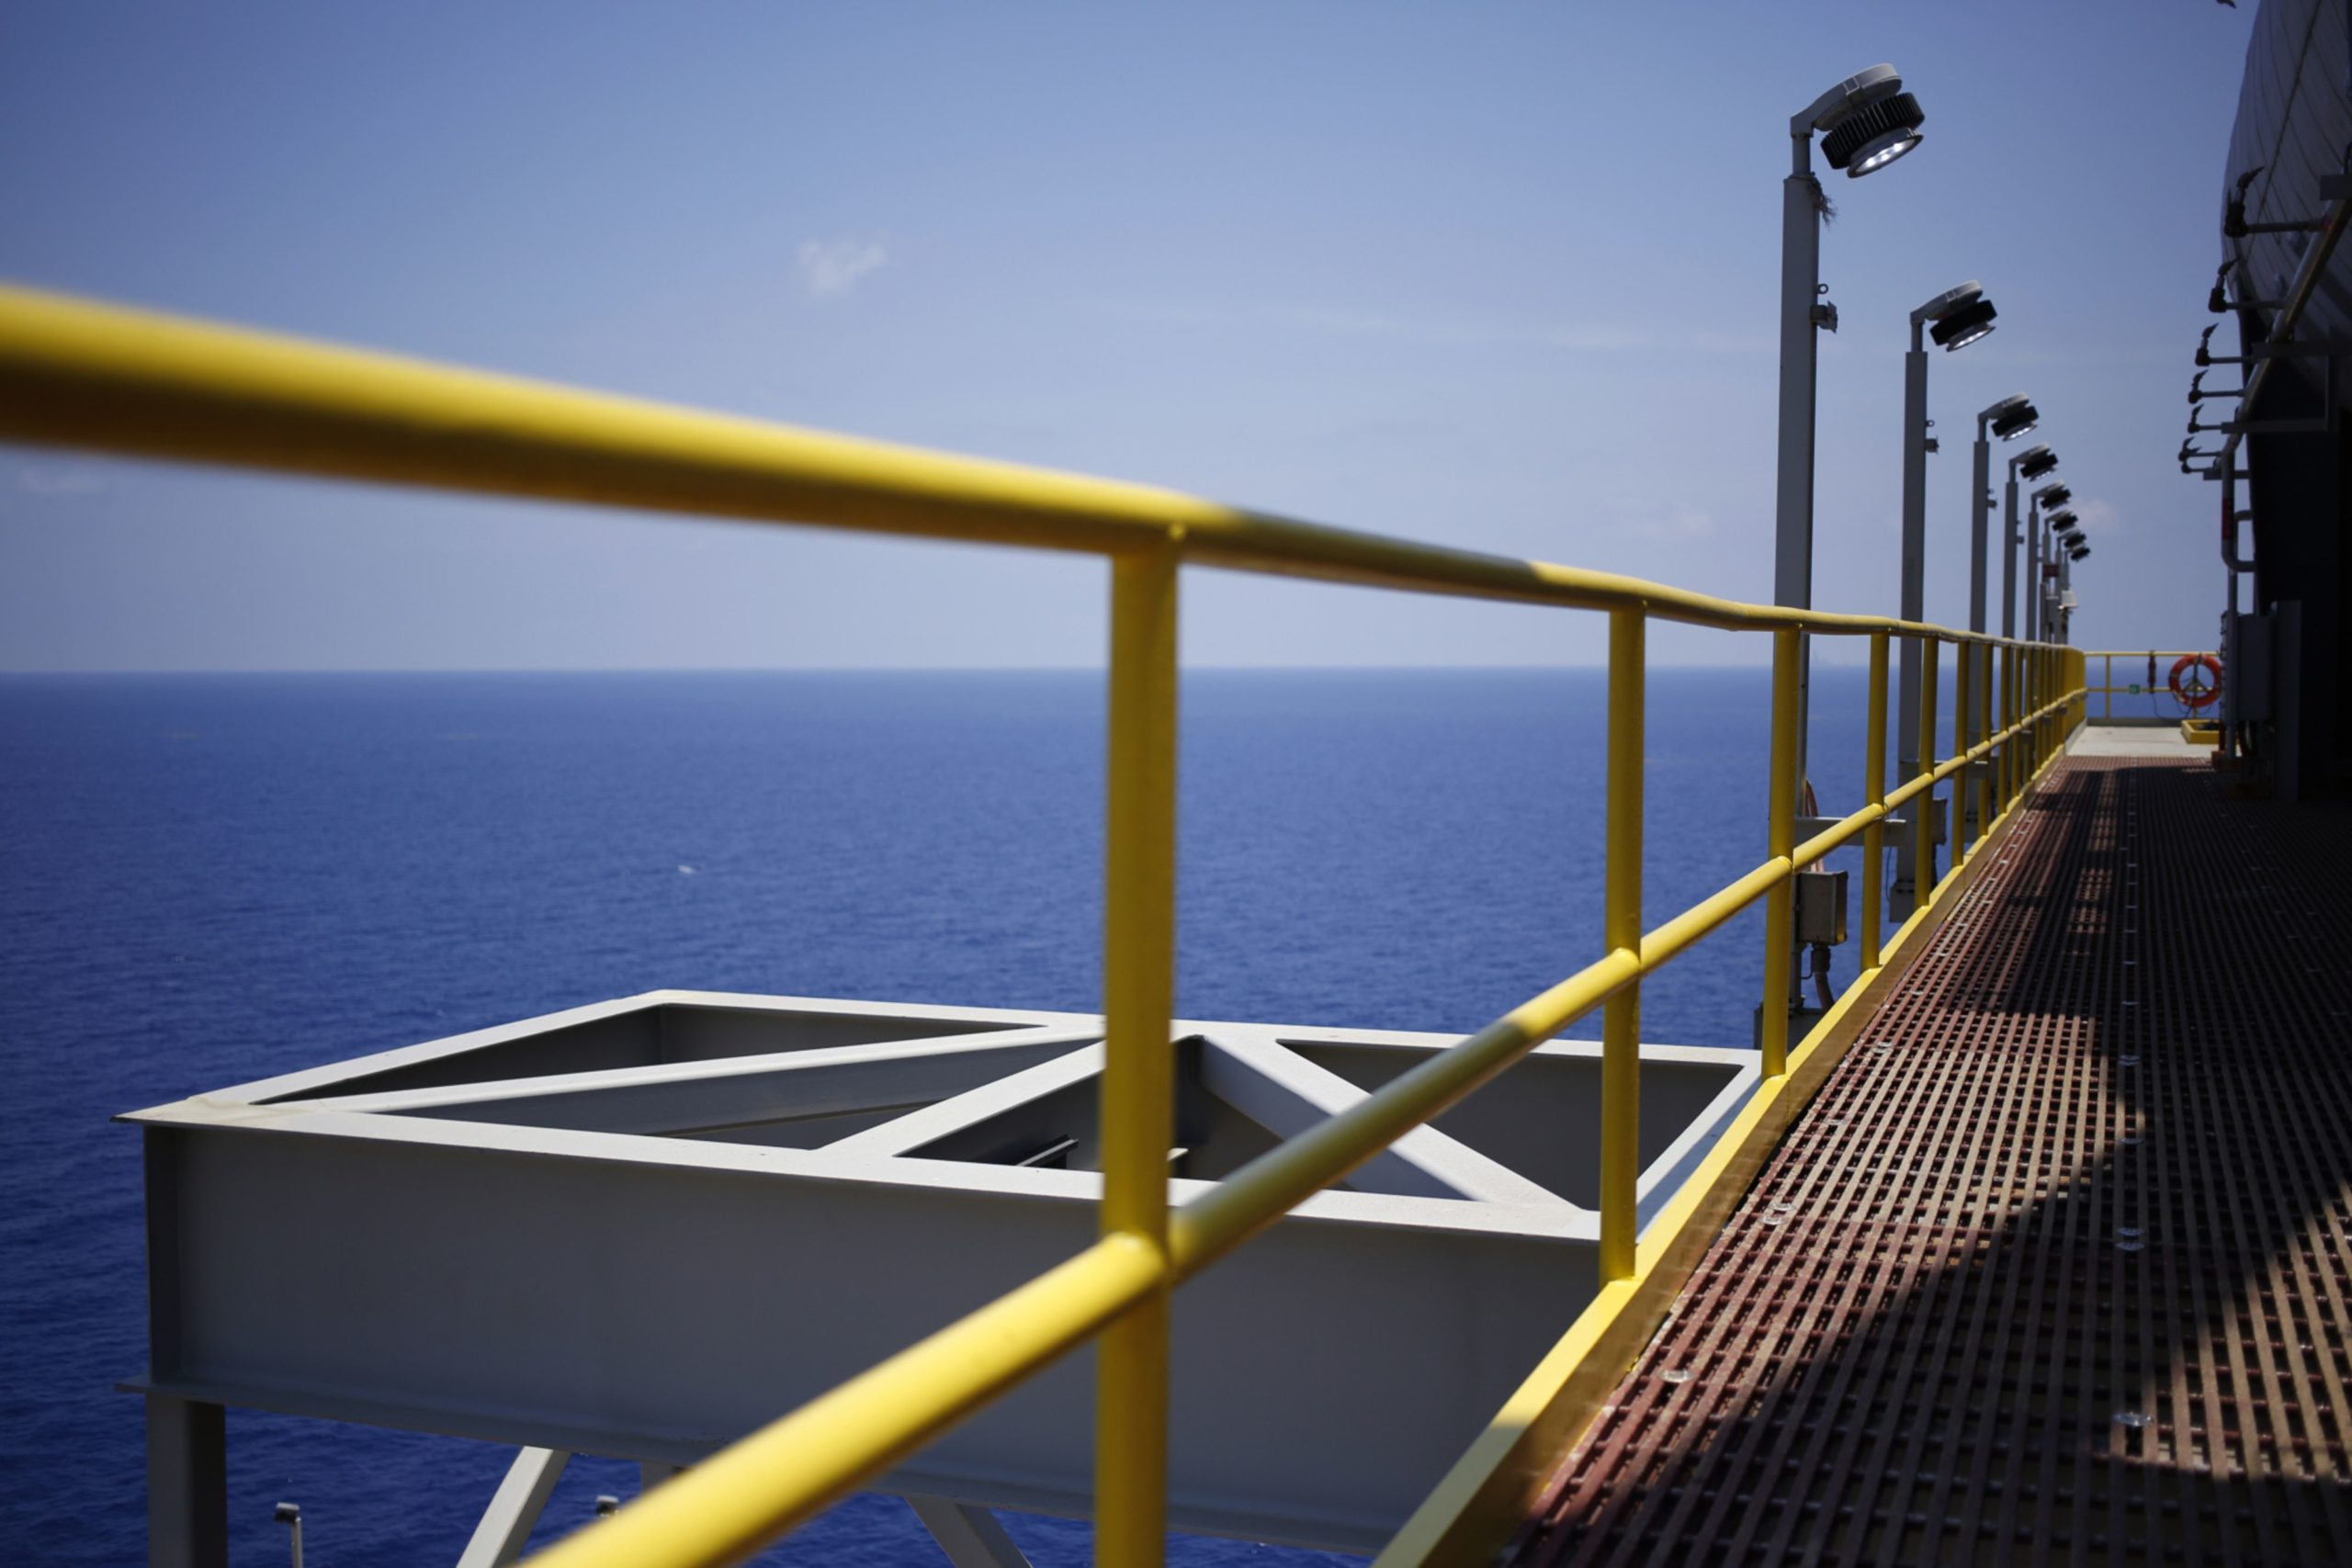 BP announces start-up of 'high-value' project in Gulf of Mexico